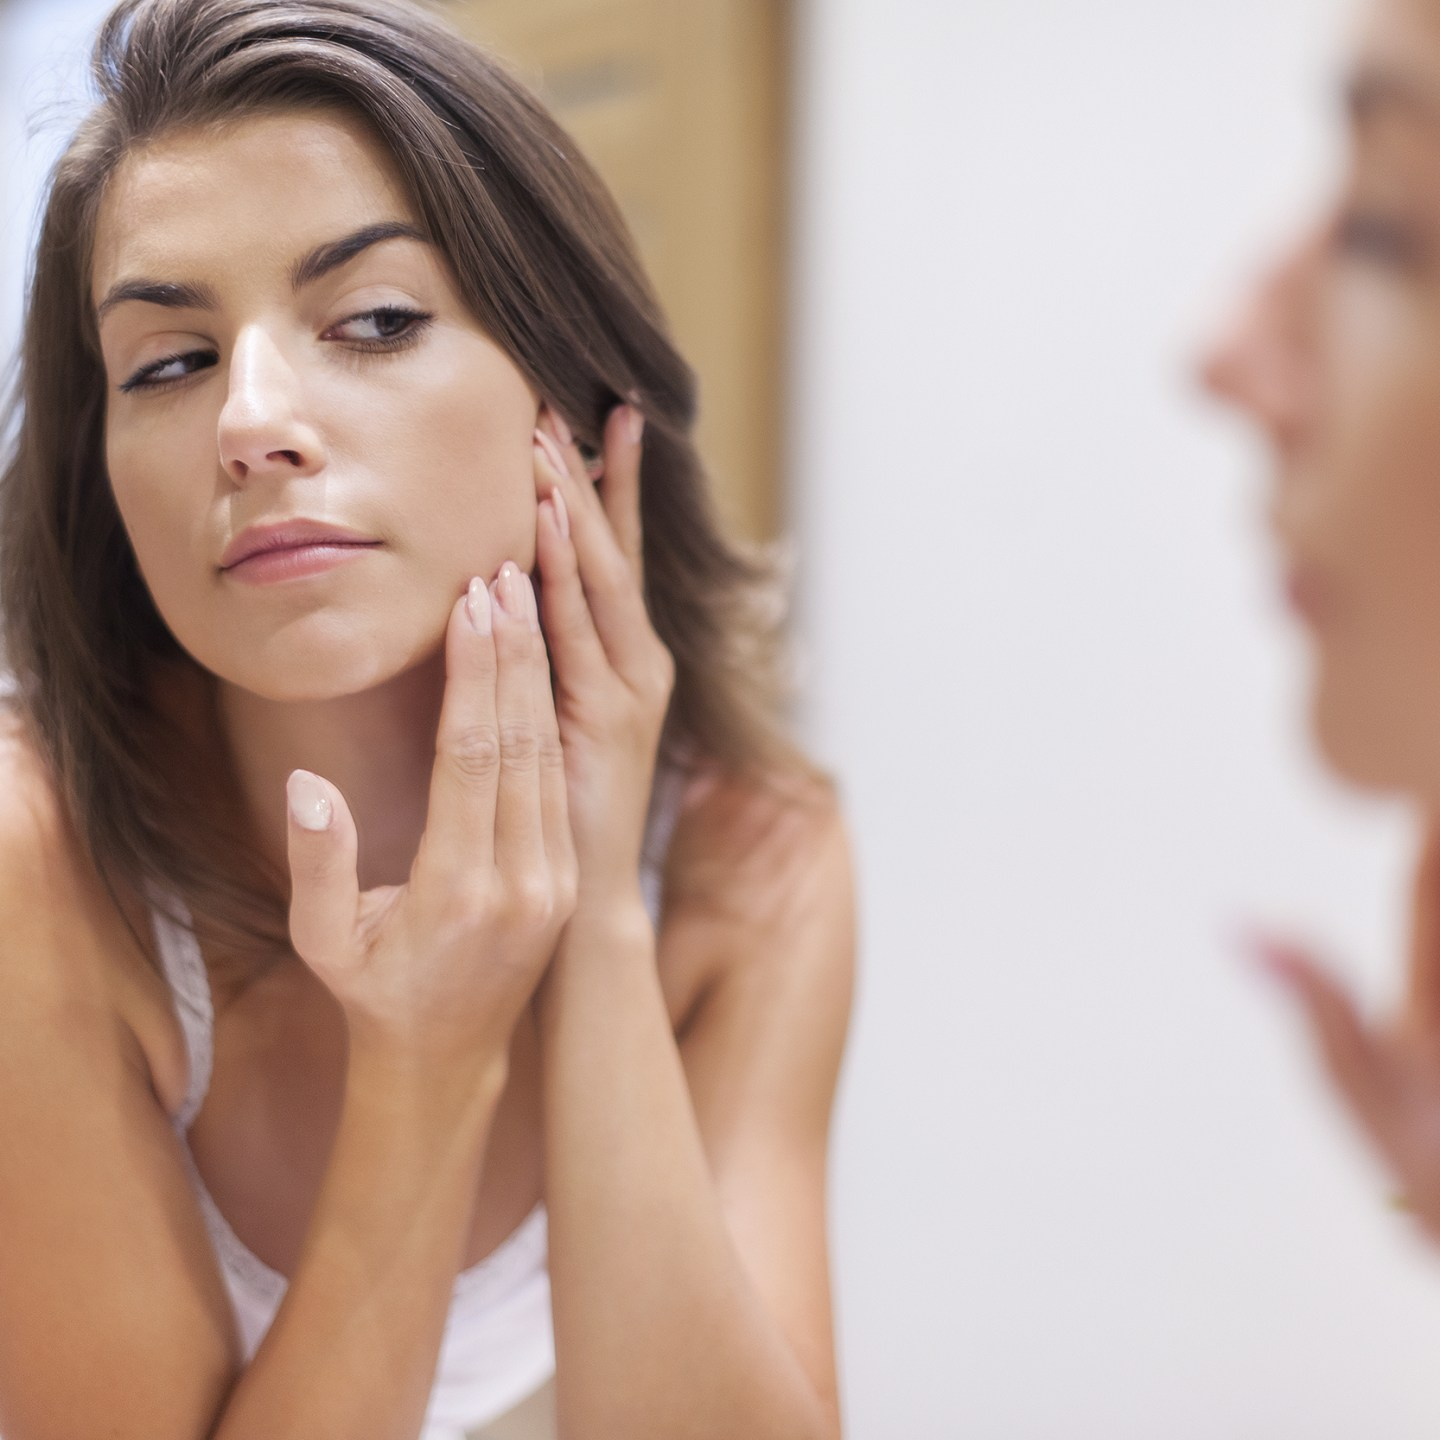 10 Common Skincare Mistakes To Avoid